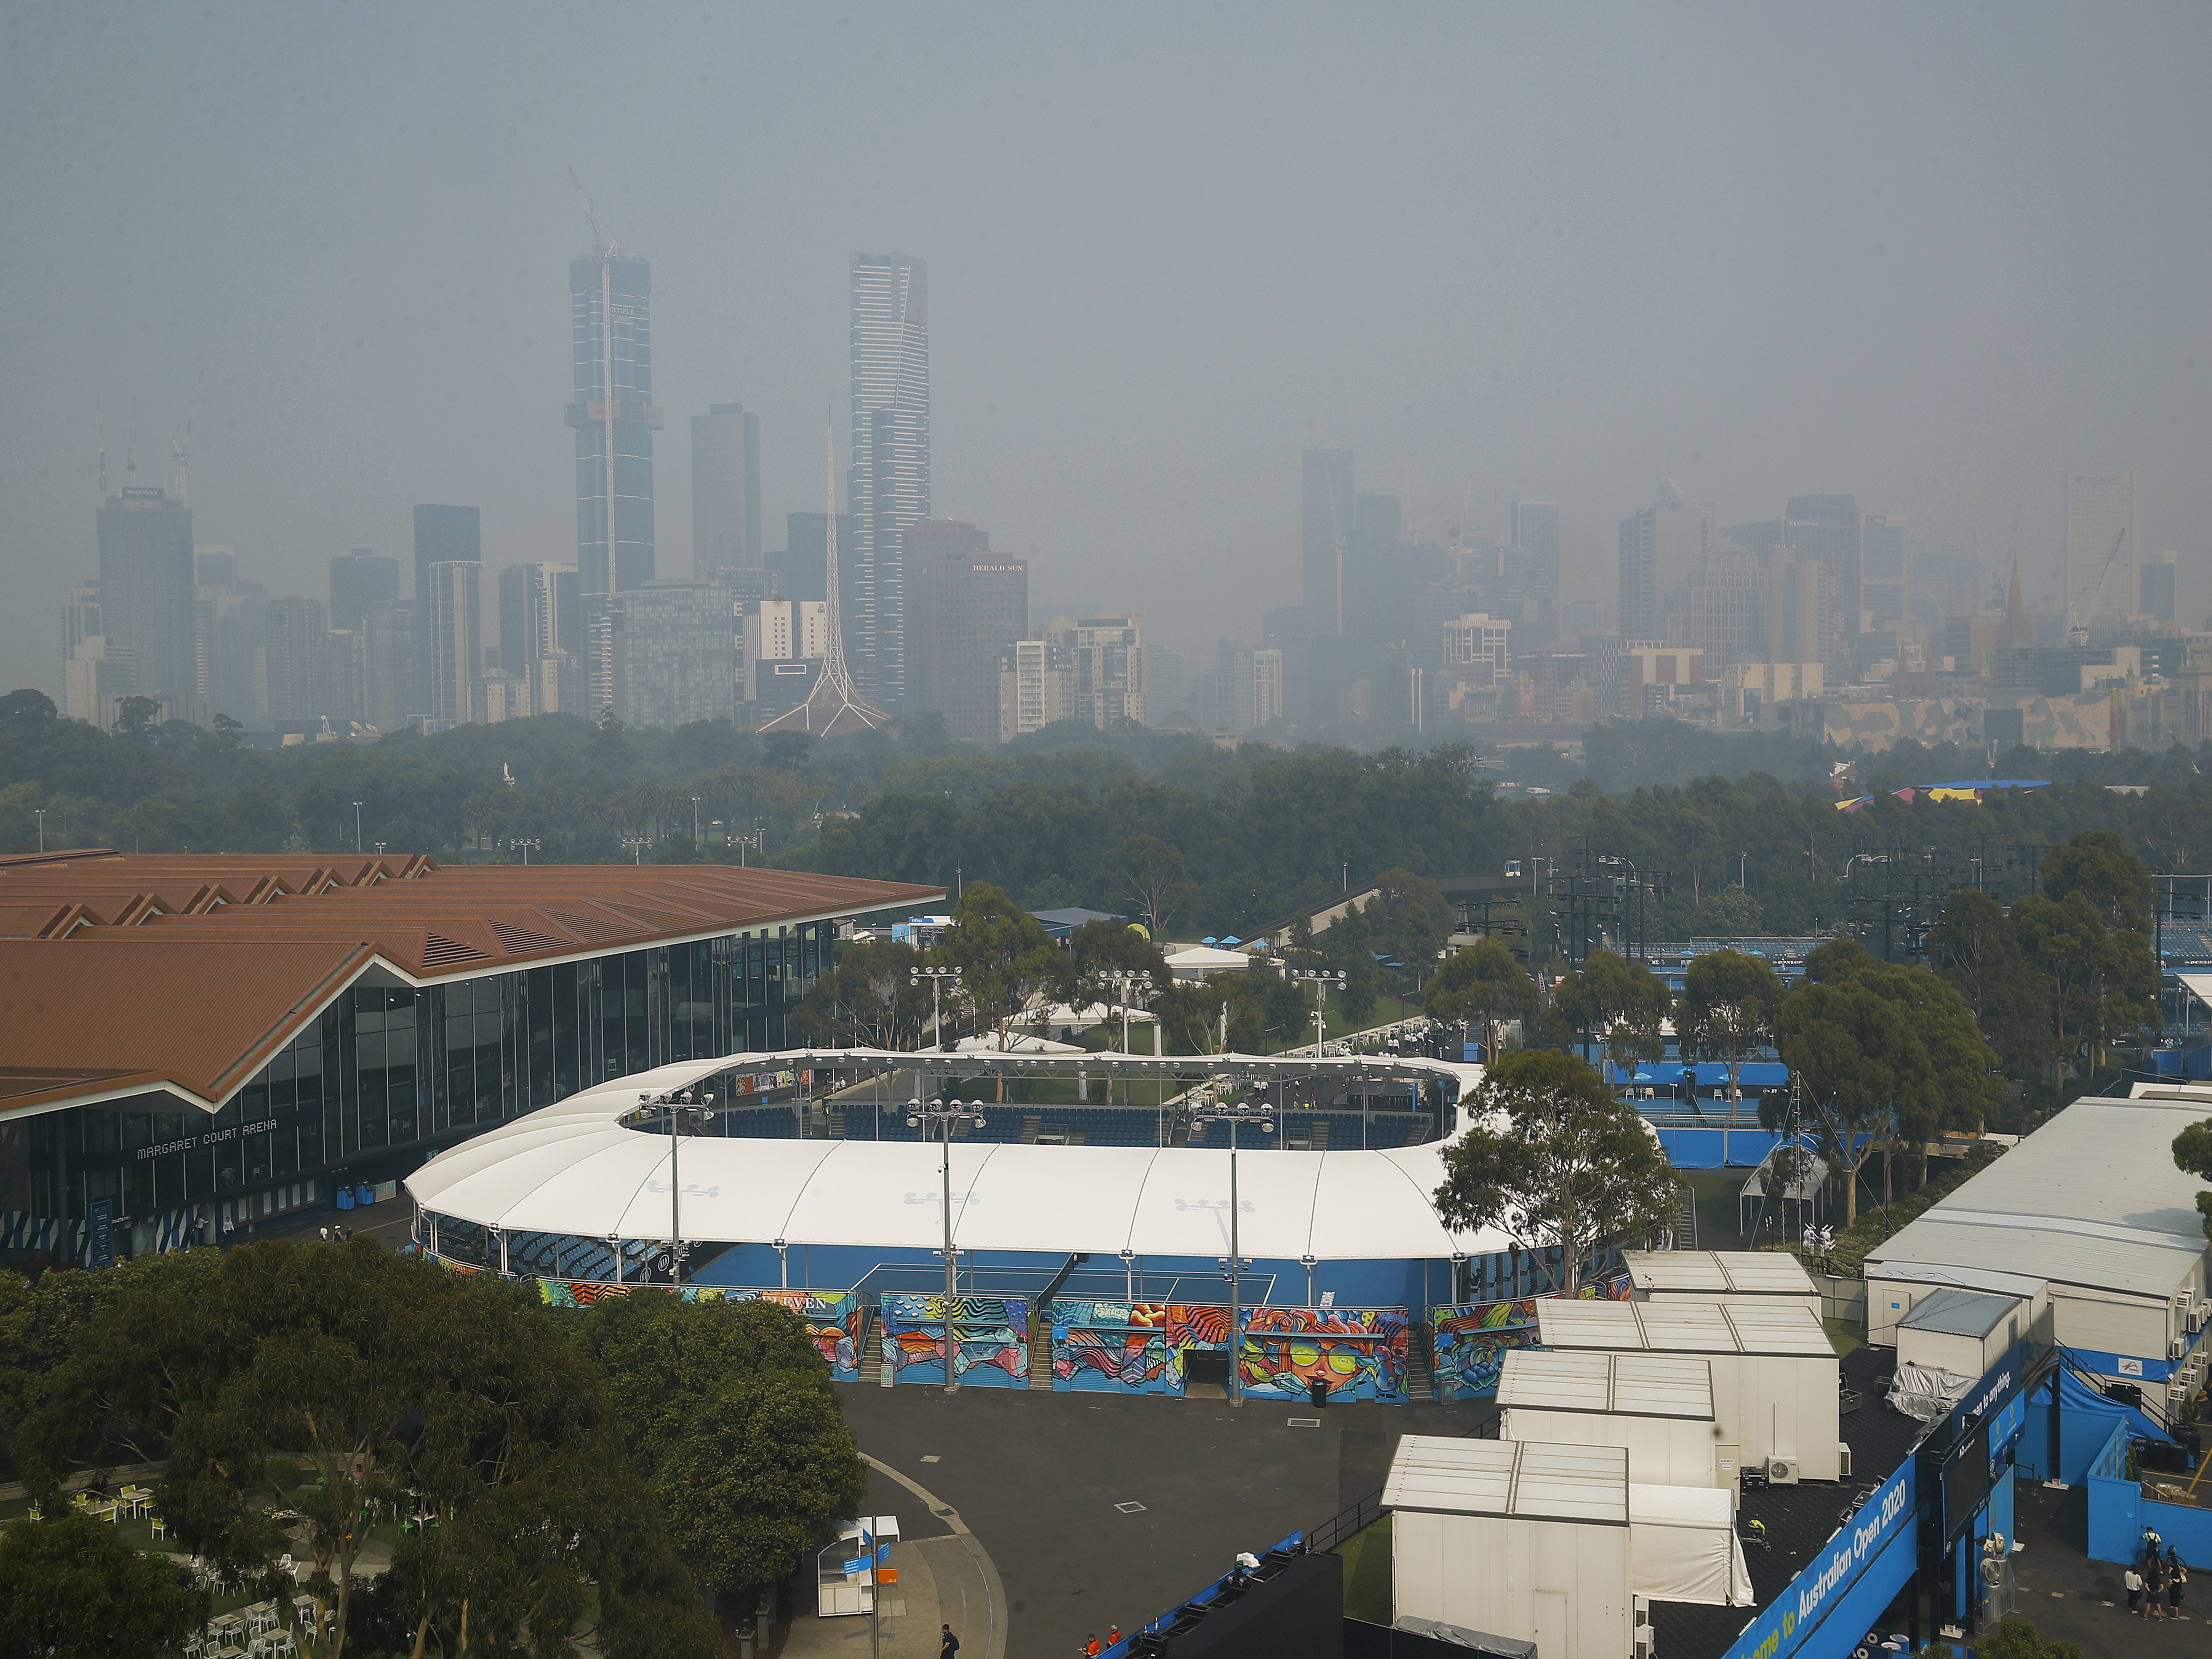 Bushfire Smoke Causes Player To Forfeit Her Qualifying Match For Australian Open